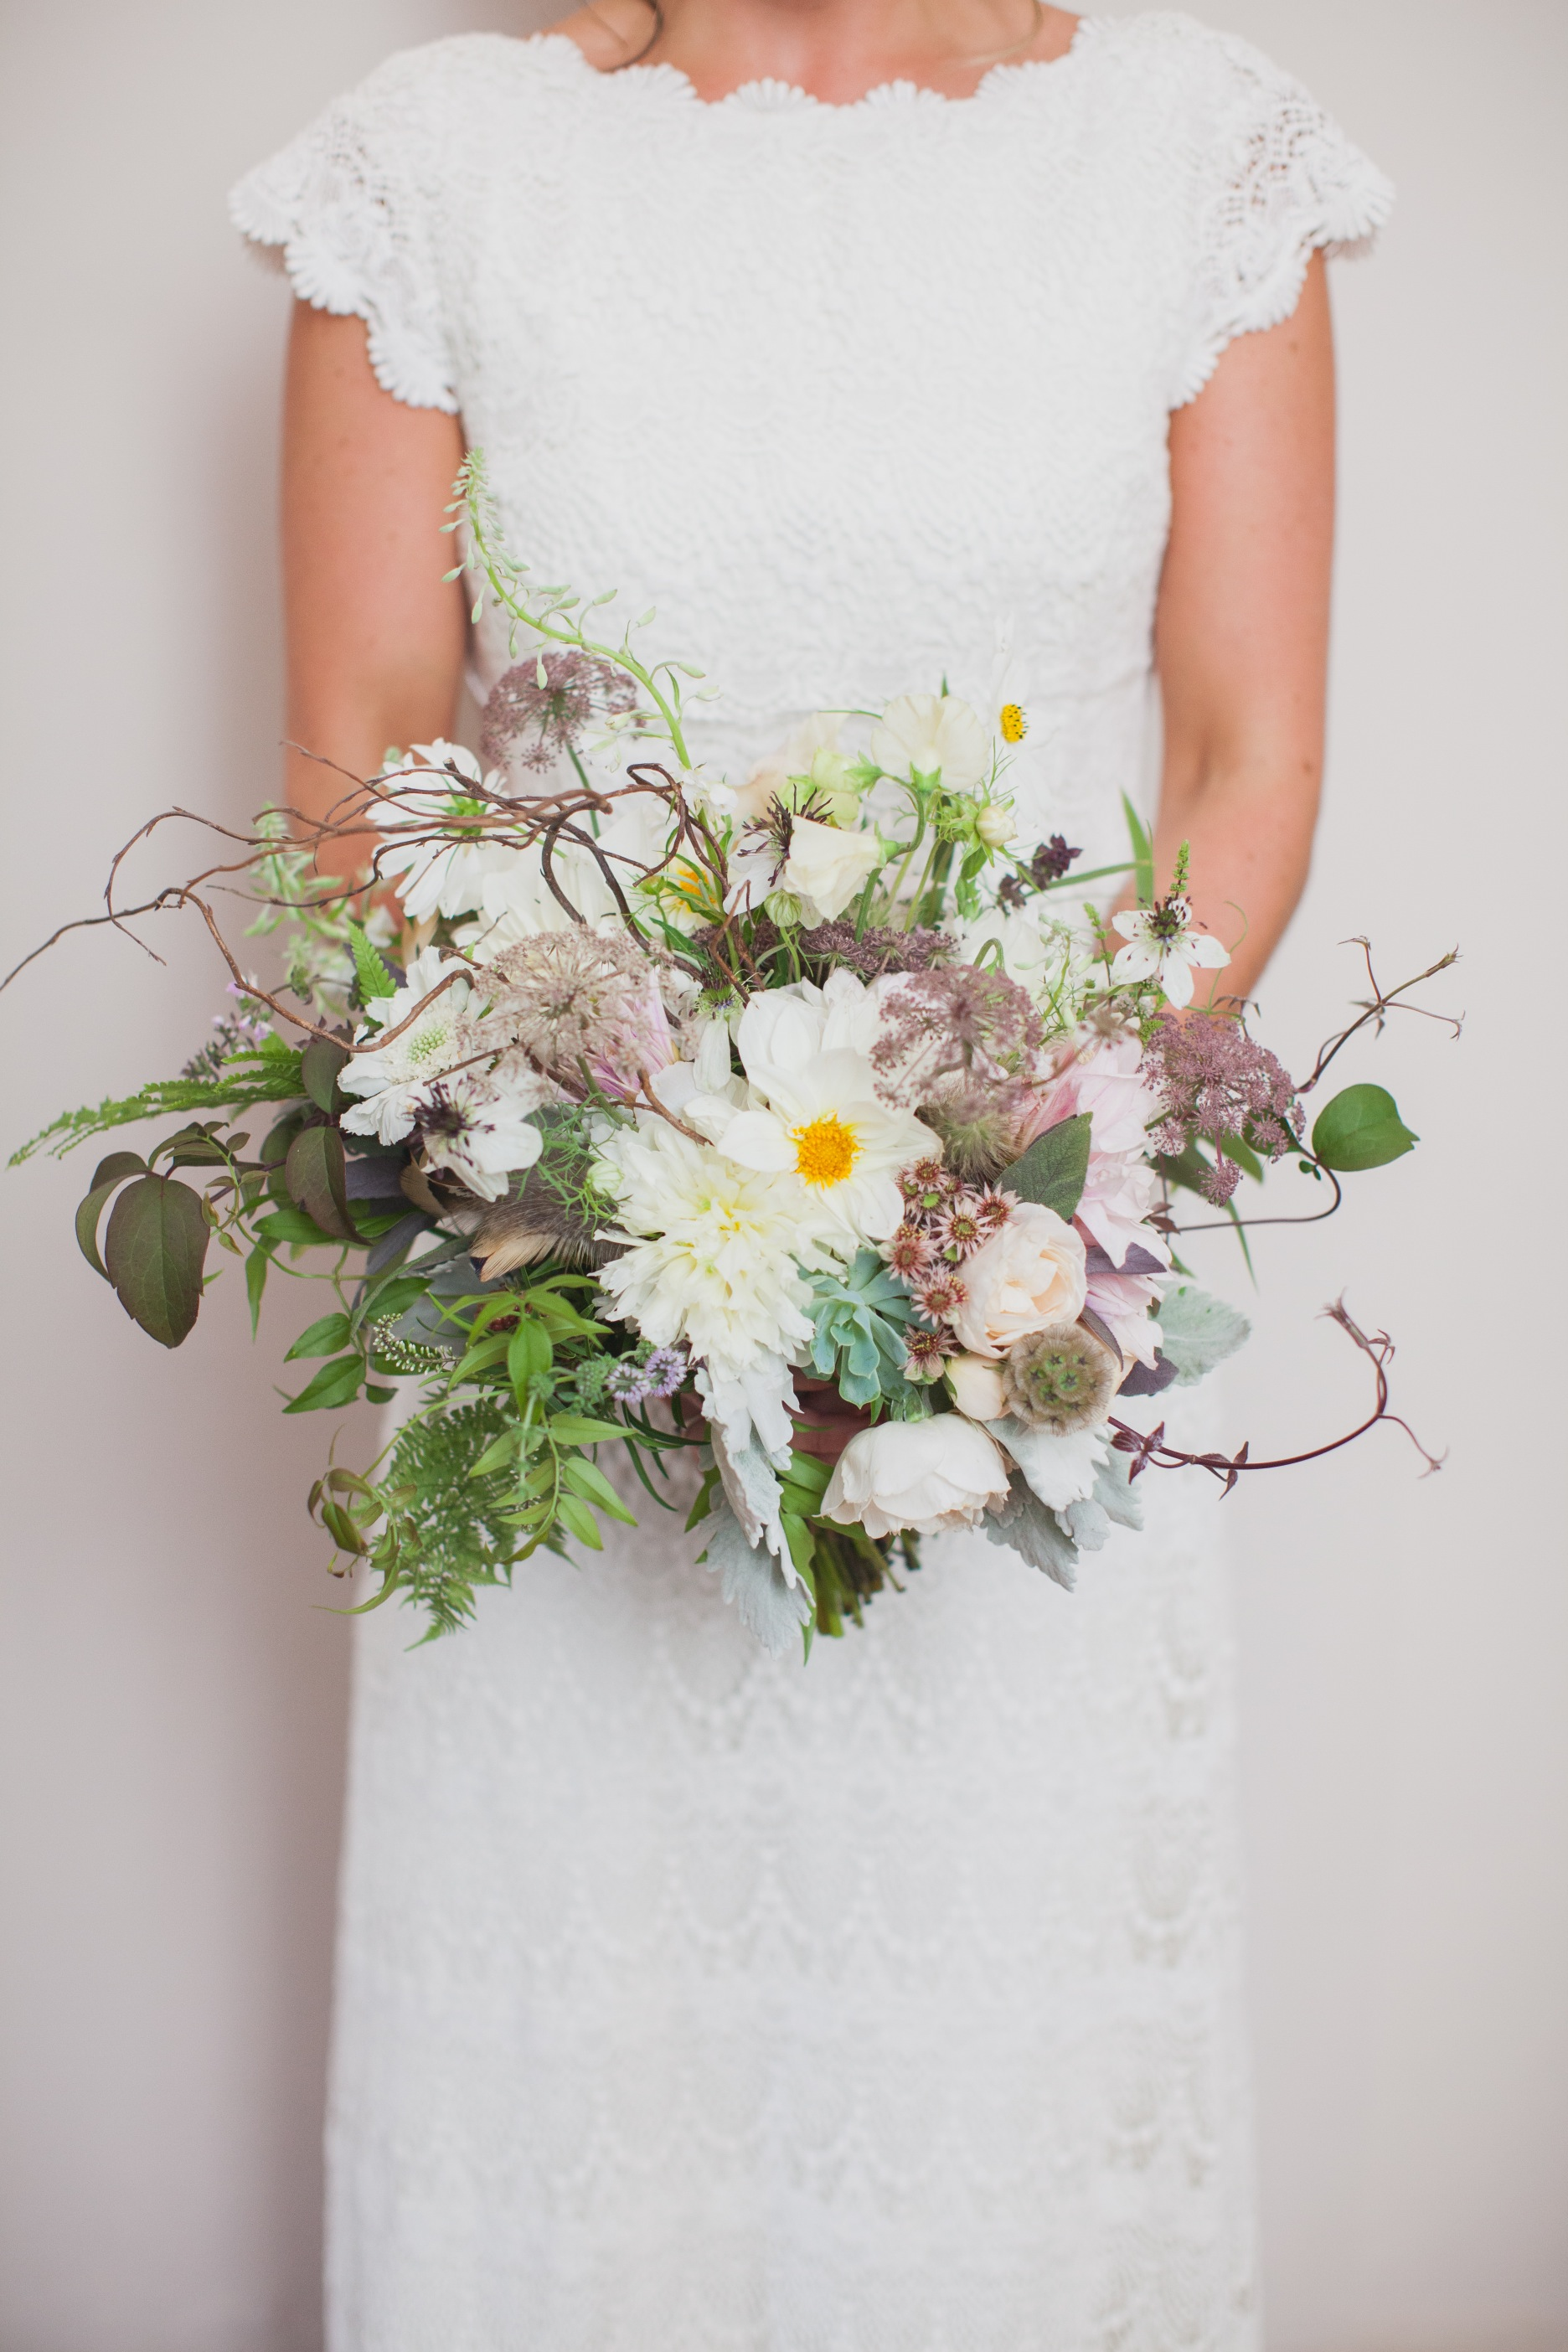 Bridal bouquet by designer Susan Hatwood of The Blue Carrot - Portscatho, Cornwall, United Kingdom, with white peonies, dahlias, sweet pea, scabiosa, larkspur, Queen Anne's lace, astrantia, succulents, dusty miller, jasmine vine, fern, curly willow and feathers